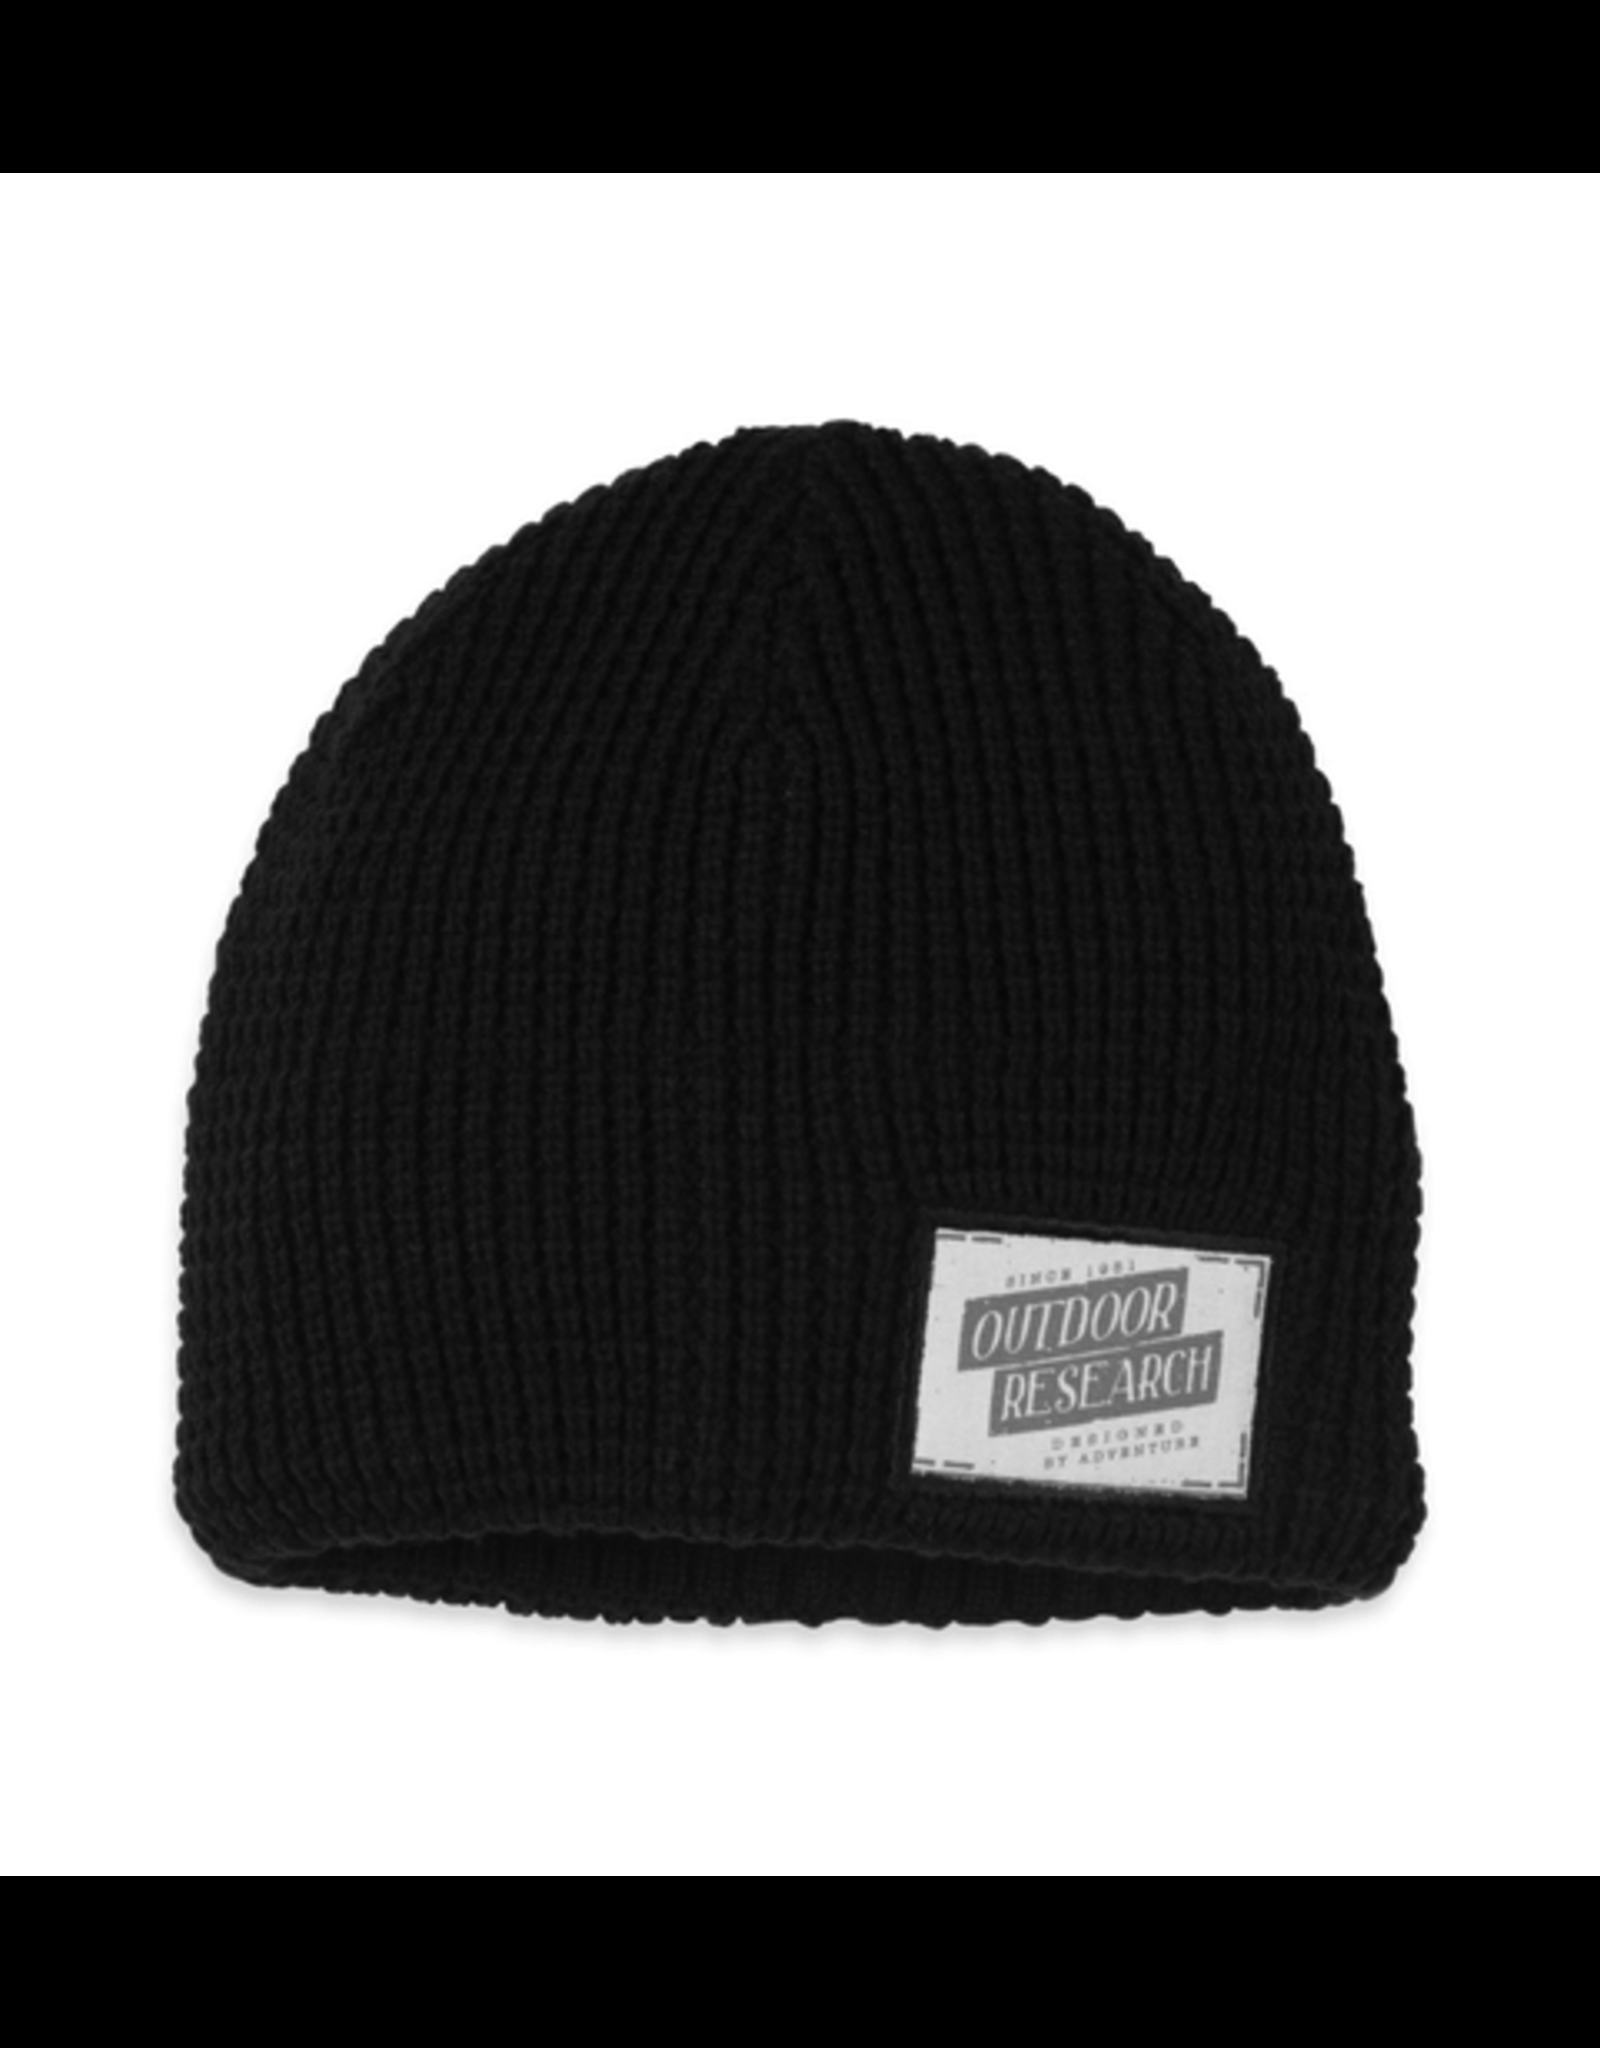 Outdoor Research Outdoor Research Toasty Beanie